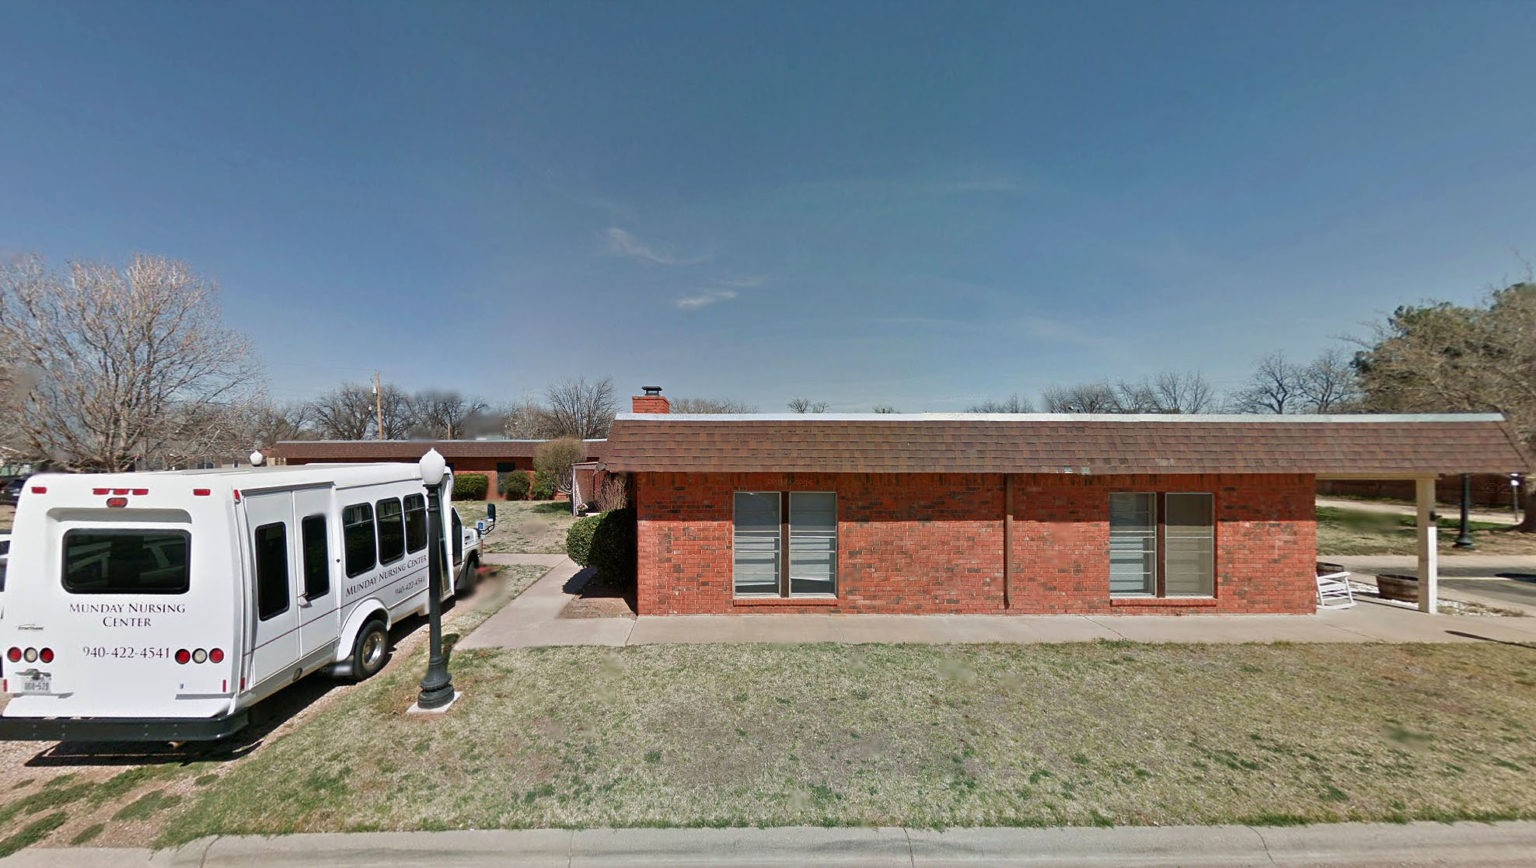 The Munday Nusing Center in Munday, Texas.